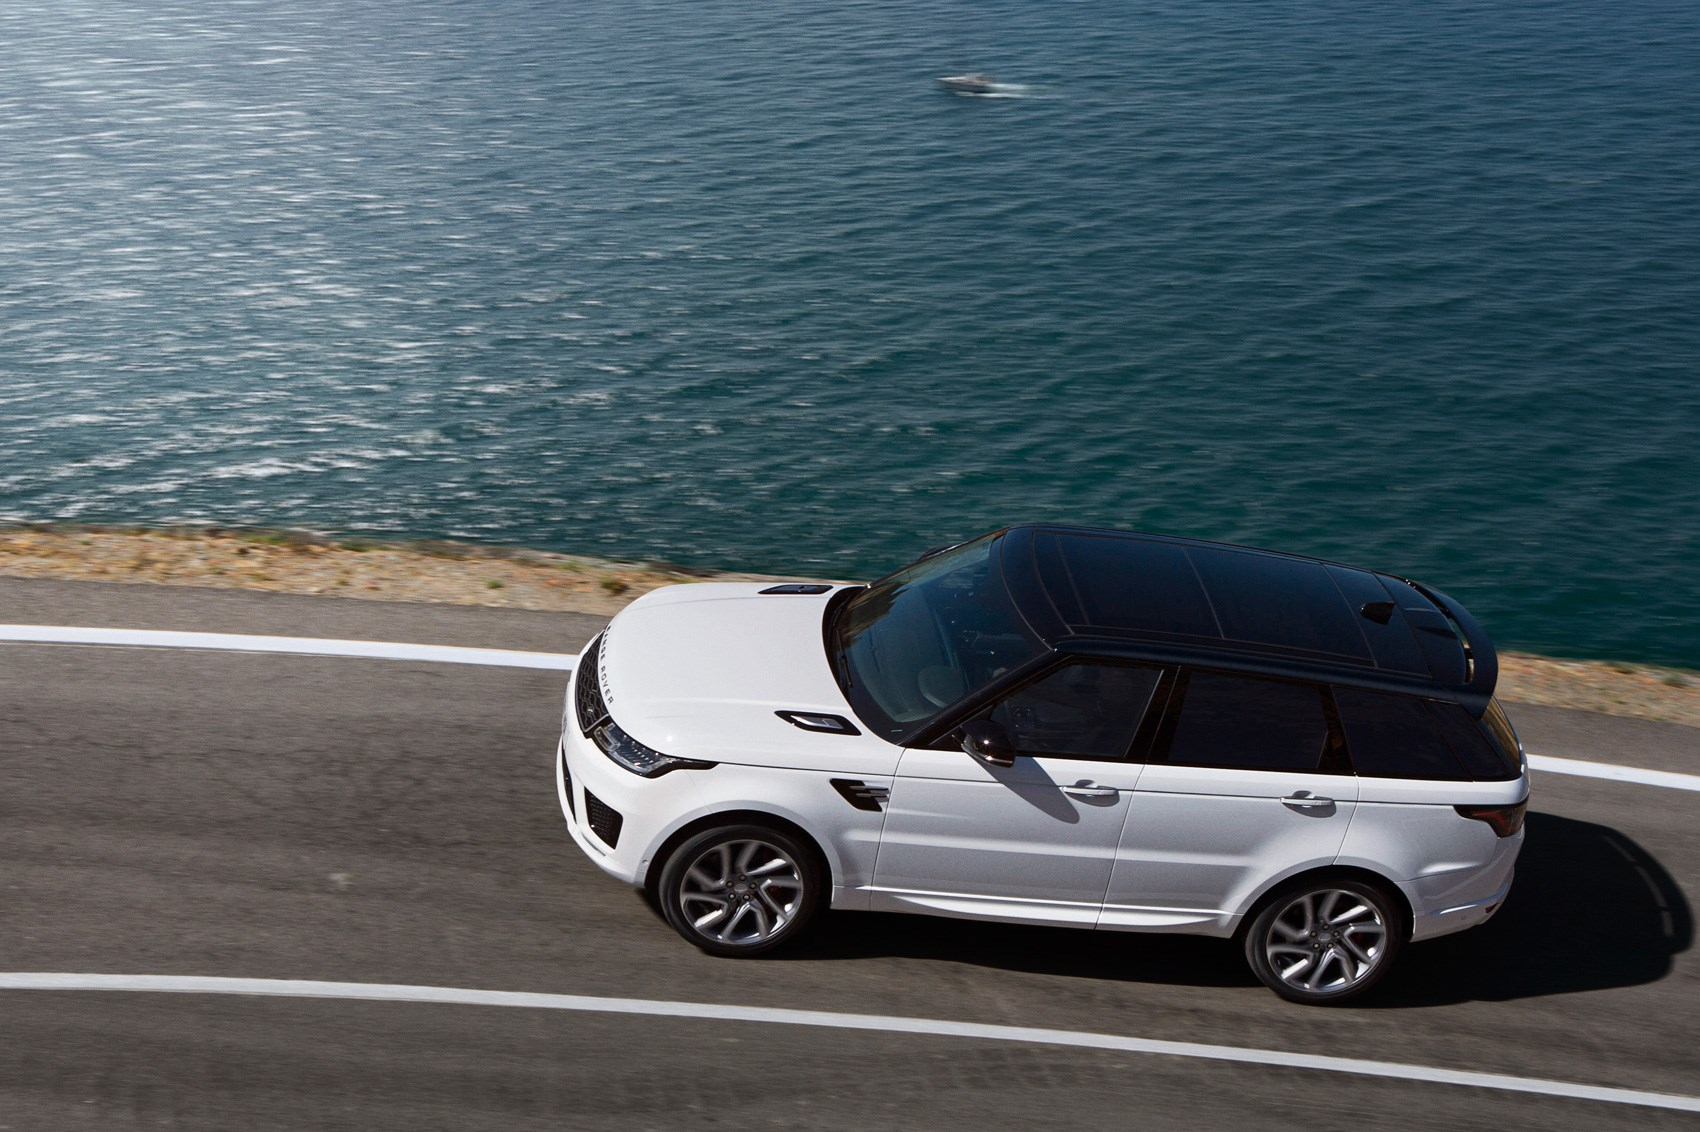 A Surging Line Up 101mpg Range Rover Sport Plug In Hybrid Joins The